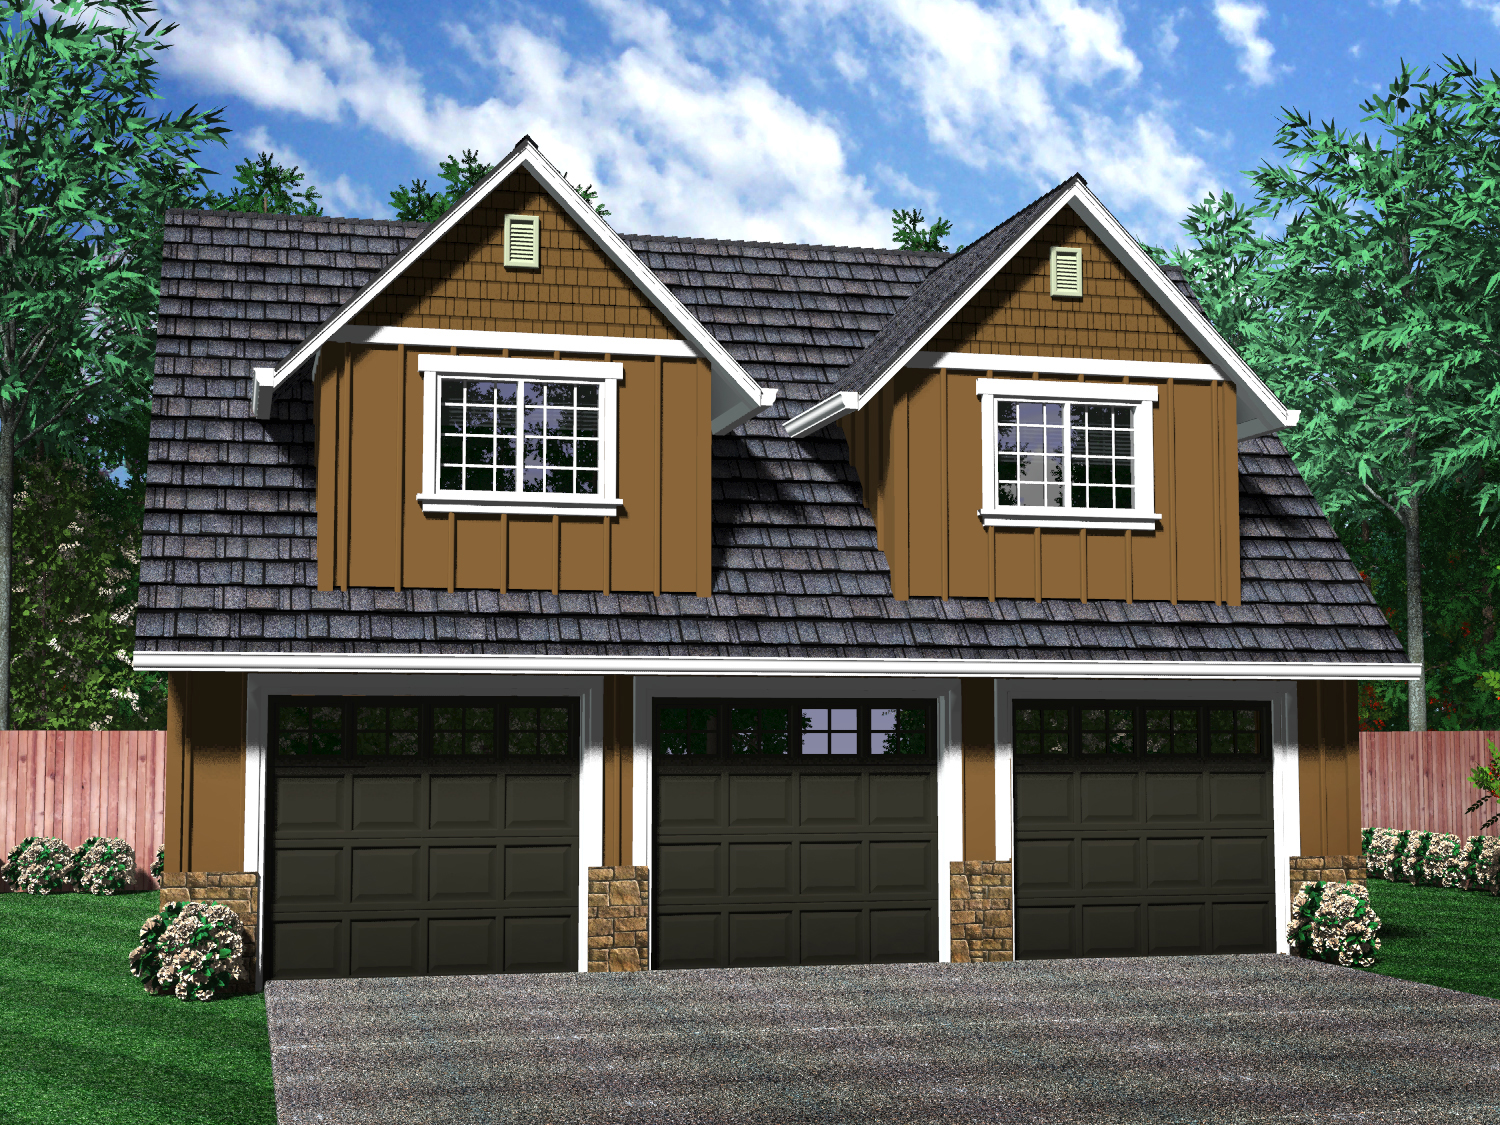 Detached garages for Garages with apartments above them